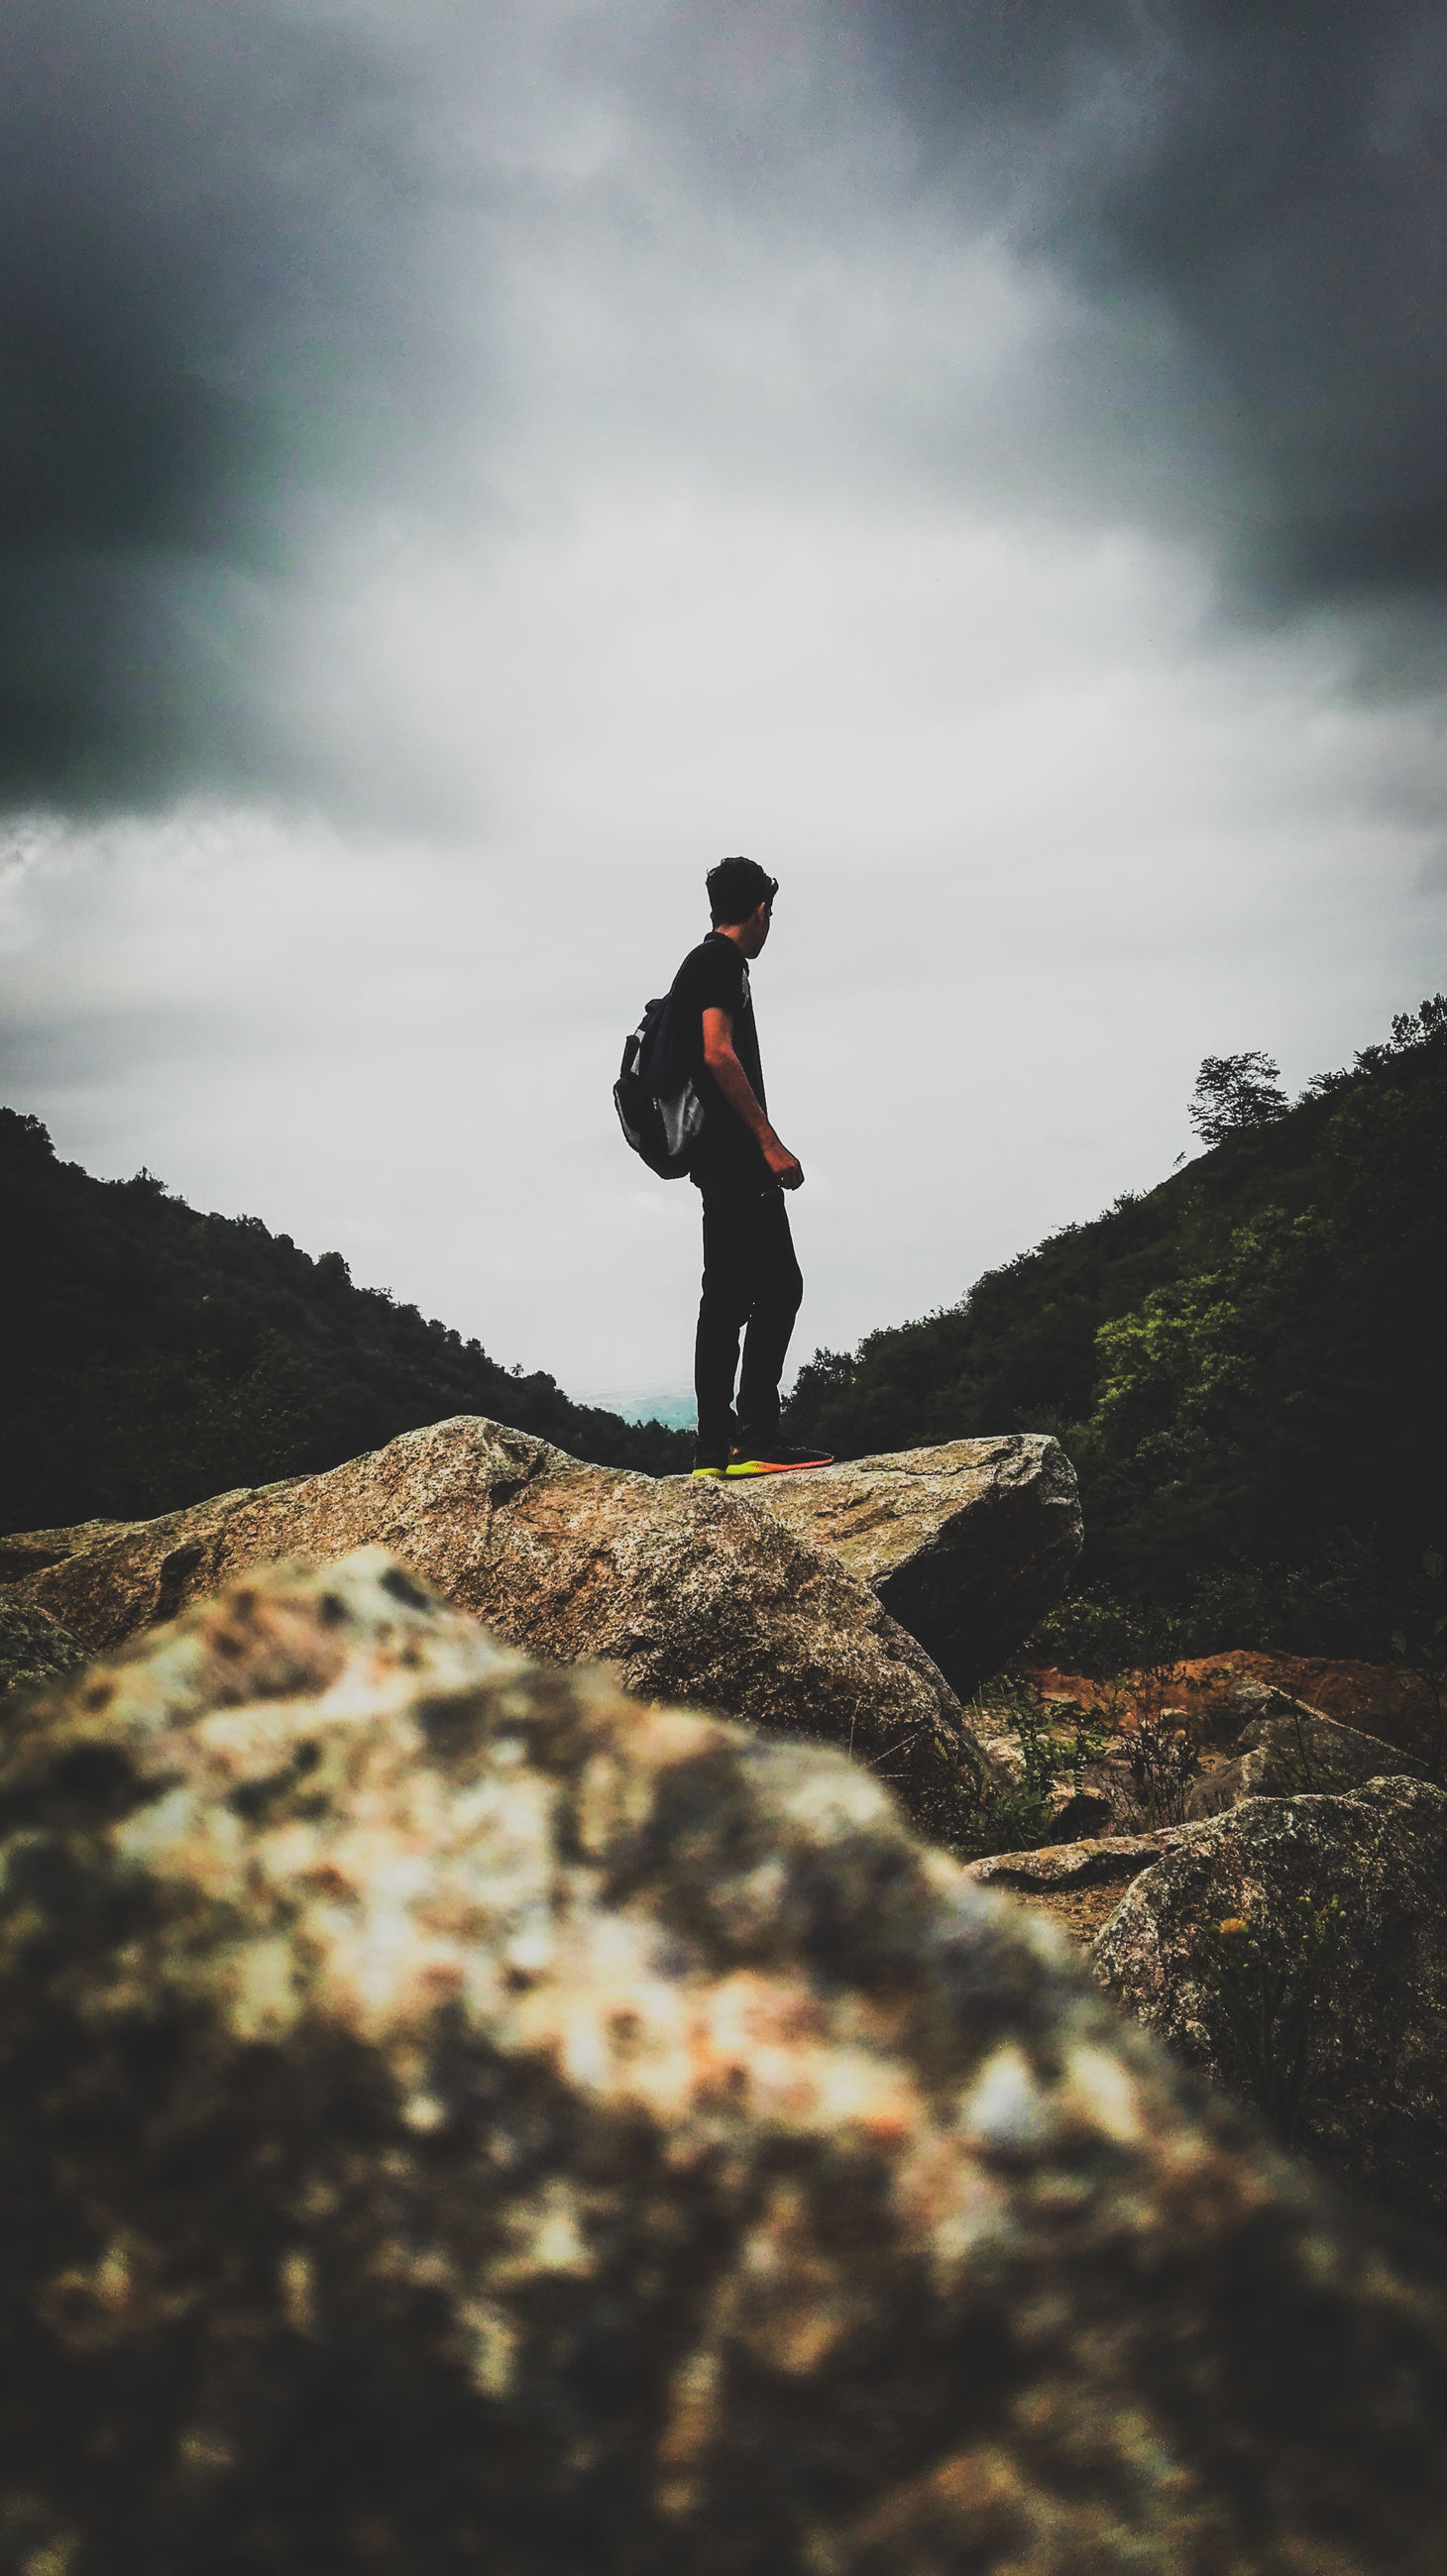 cloud - sky, sky, one person, rock, solid, leisure activity, real people, standing, lifestyles, rock - object, day, nature, full length, mountain, beauty in nature, men, scenics - nature, side view, outdoors